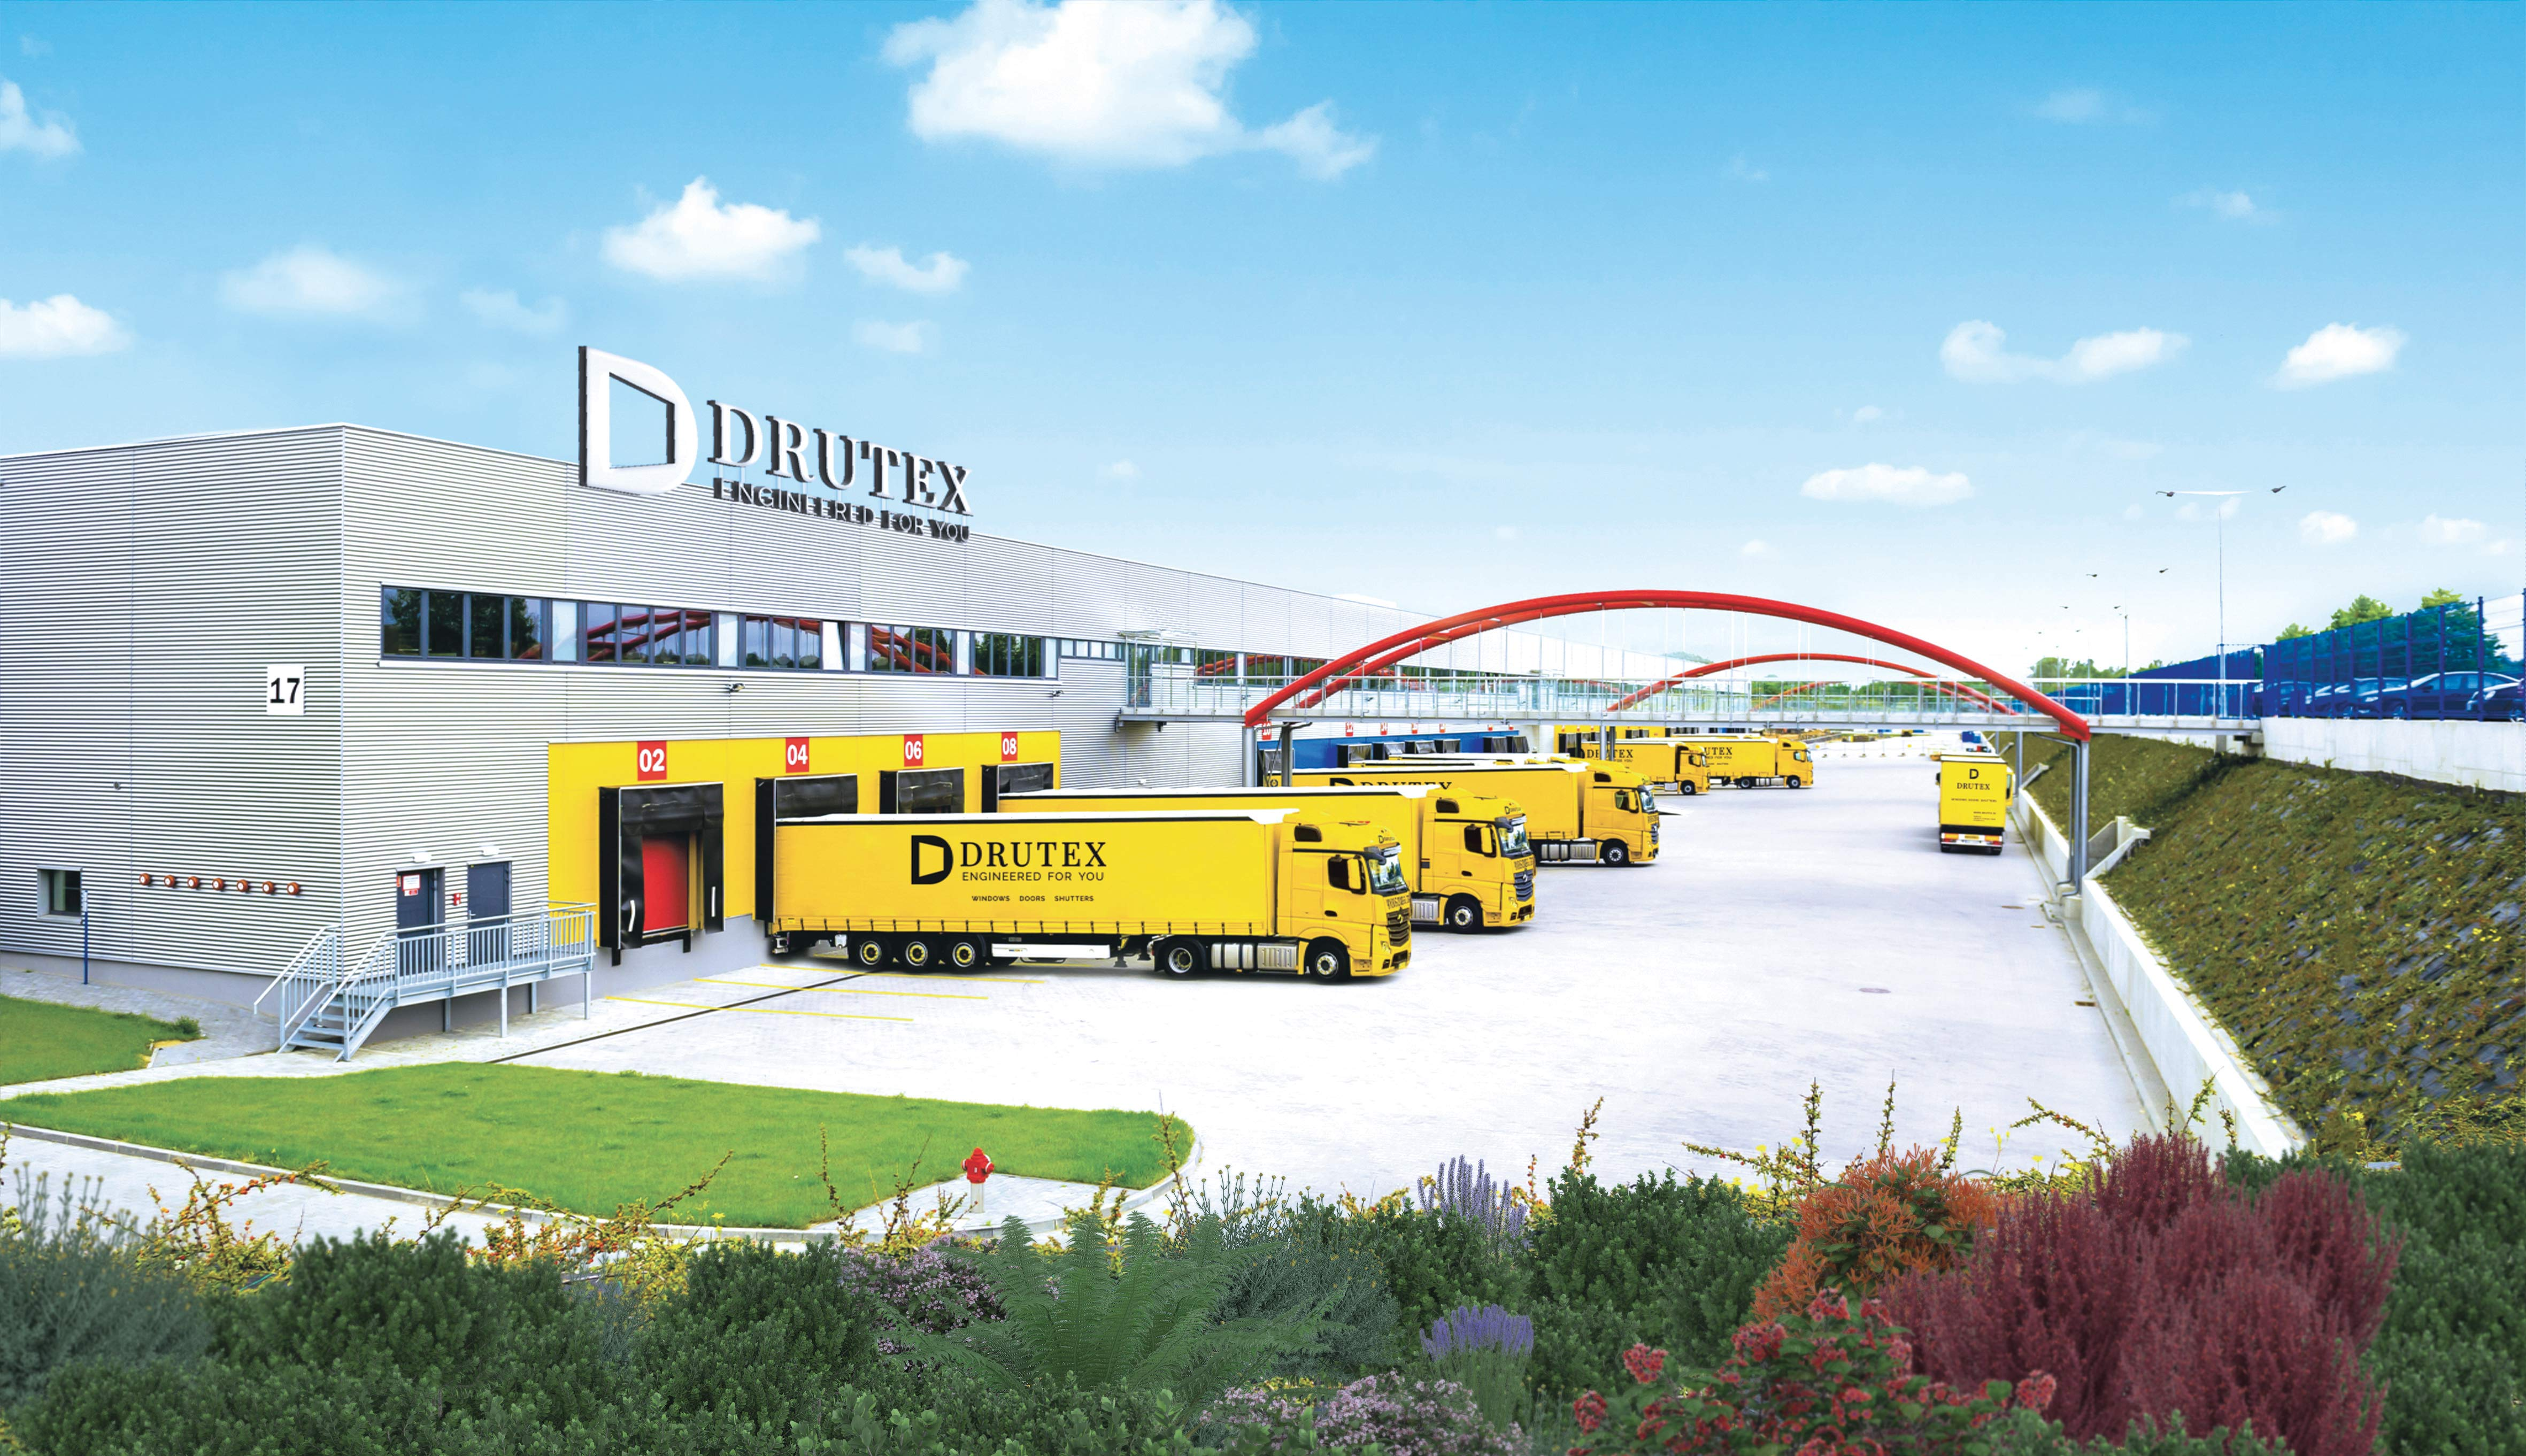 DRUTEX EXPANDS ITS TRANSPORT FLEET!